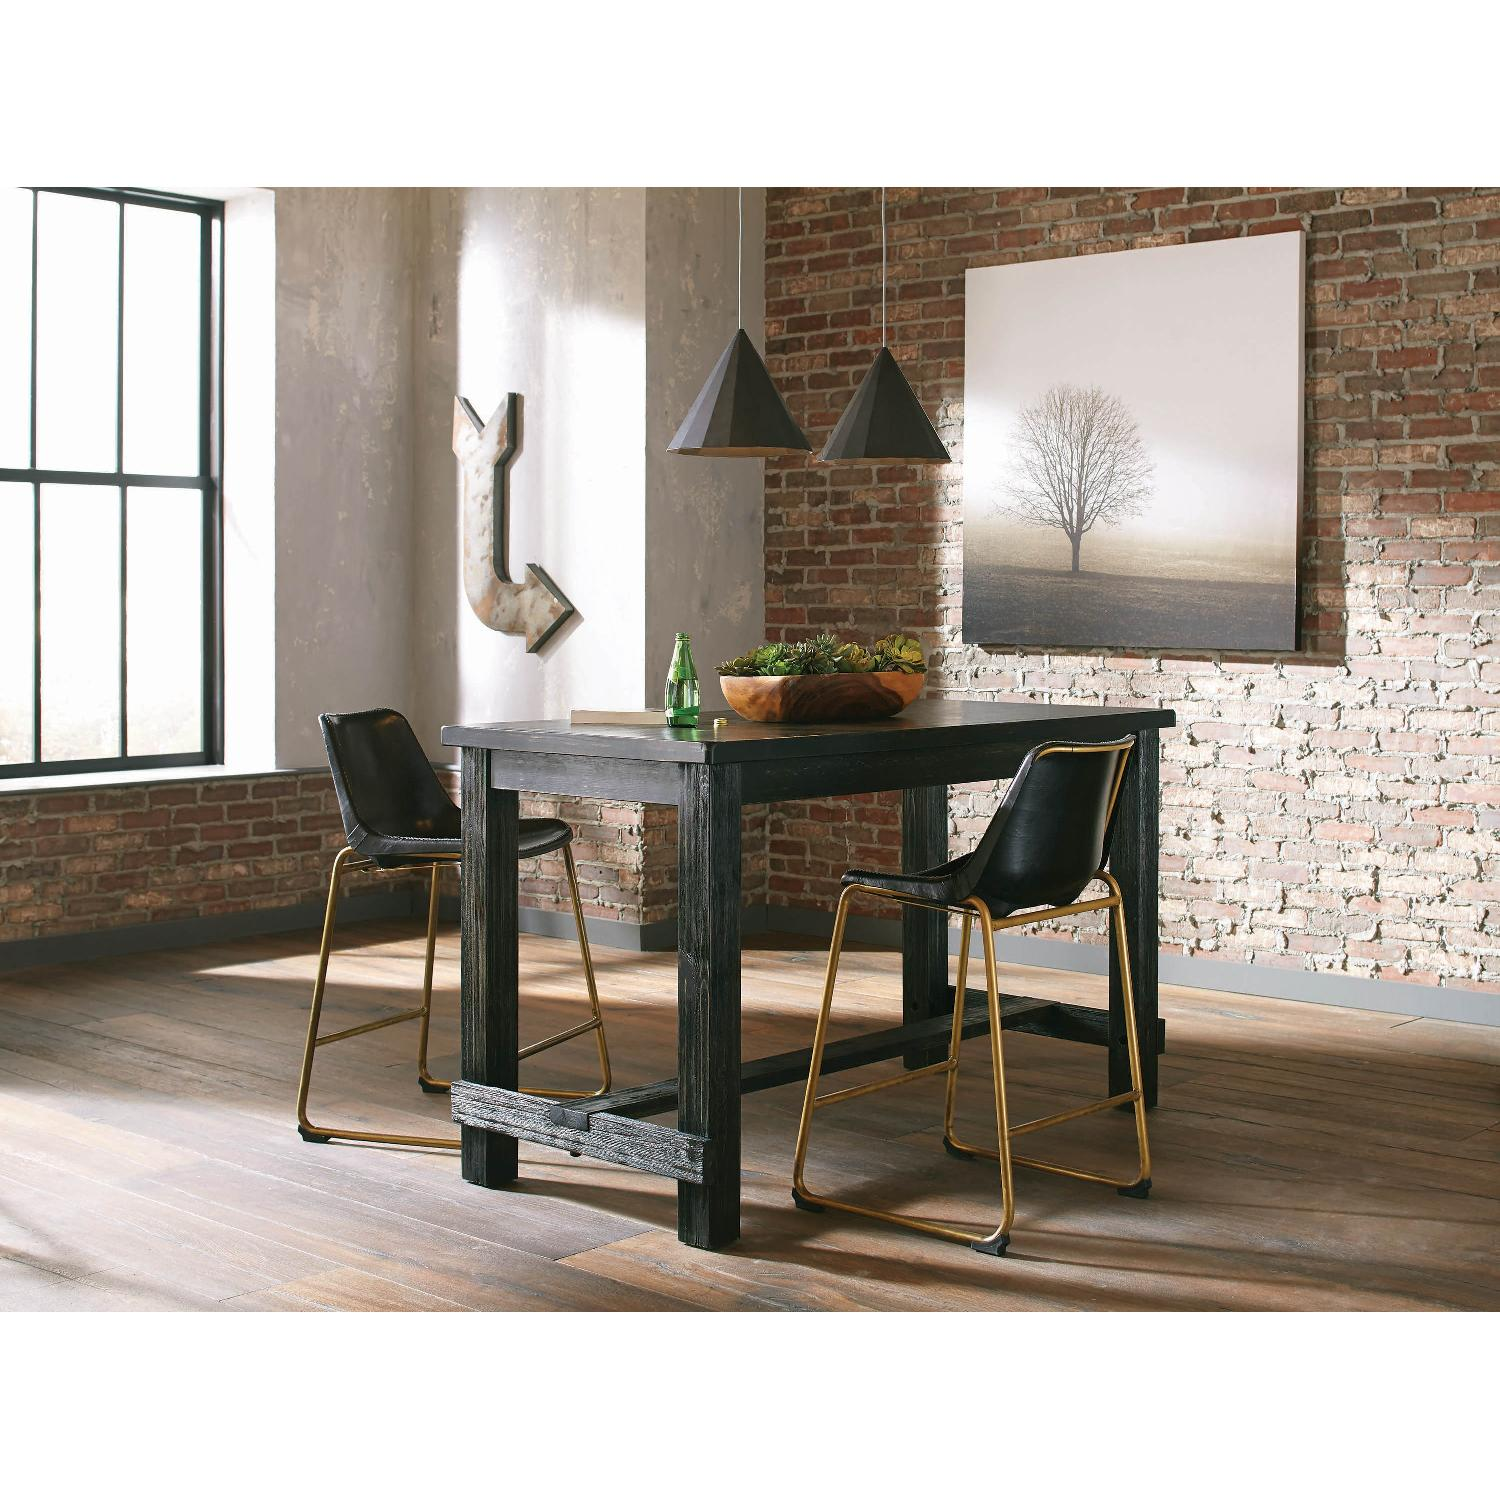 Counter Height Chair w/ Black Seat & Brass Base - image-6